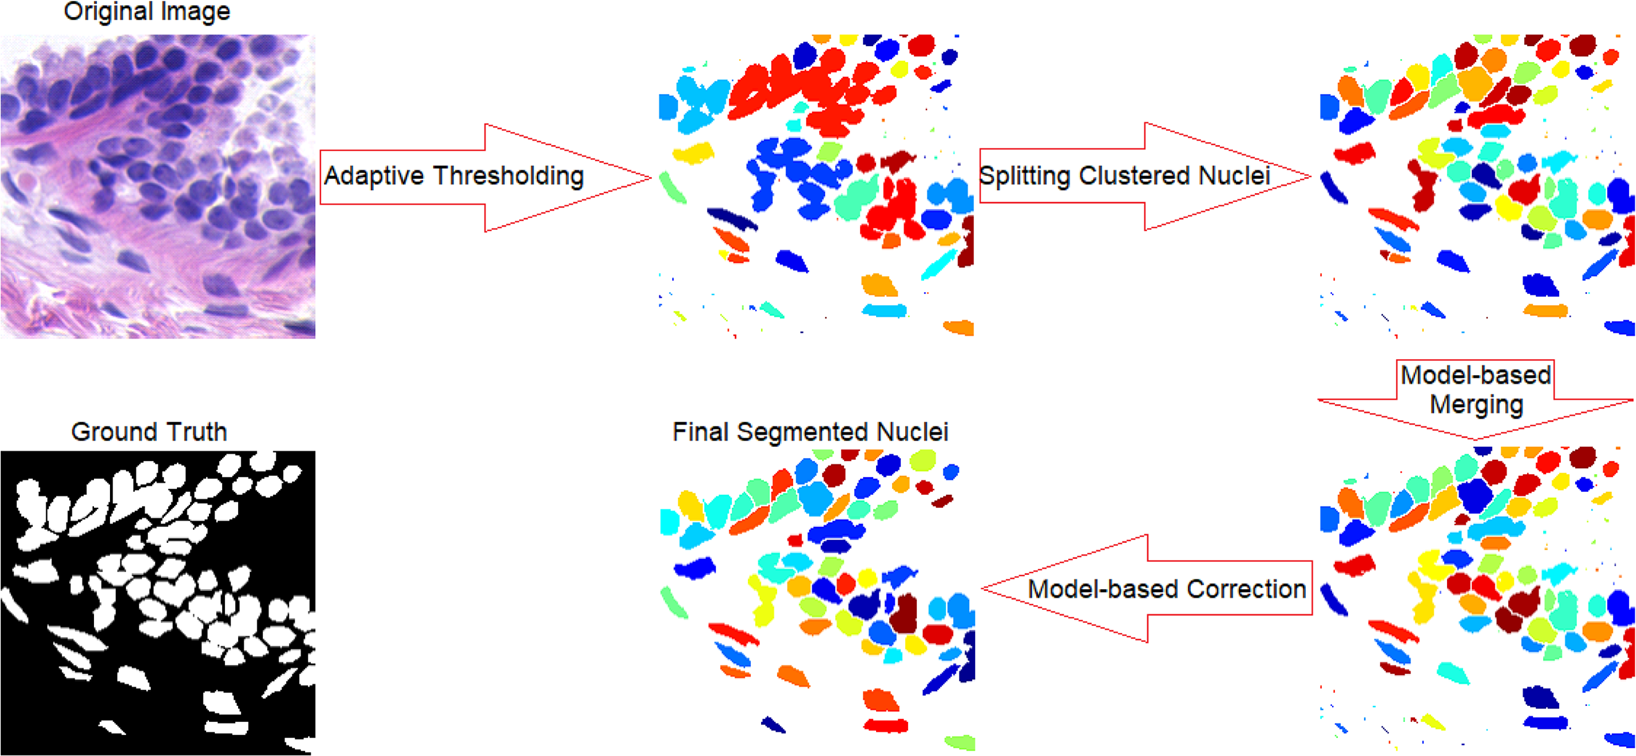 Segmentation of Heavily Clustered Nuclei from